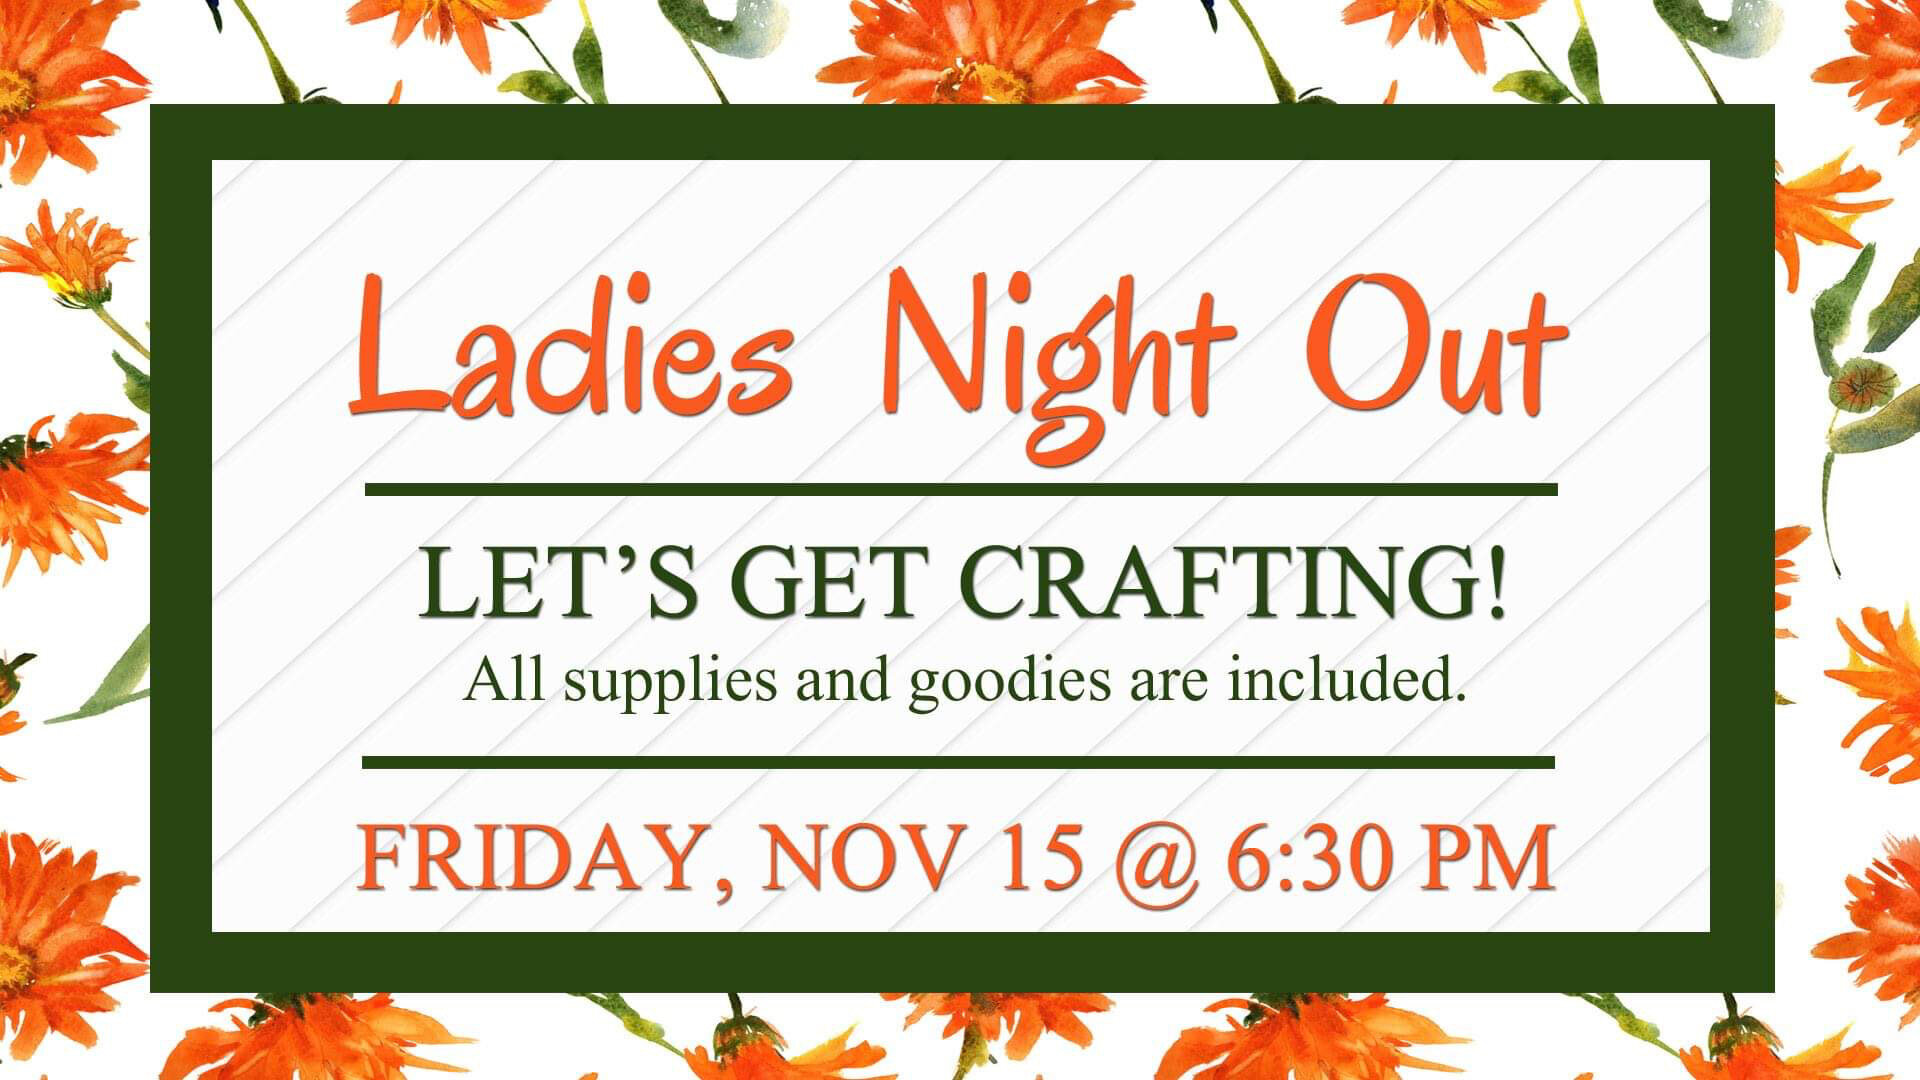 Craft Night - We're going to make-and-take wood ornaments, fabric ornaments, burlap angels, and two adorable snowmen. You'll enjoy cookie decorating, pretzel dipping, prizes, a donut wall, soup and sandwiches. Everything is free so bring a friend!